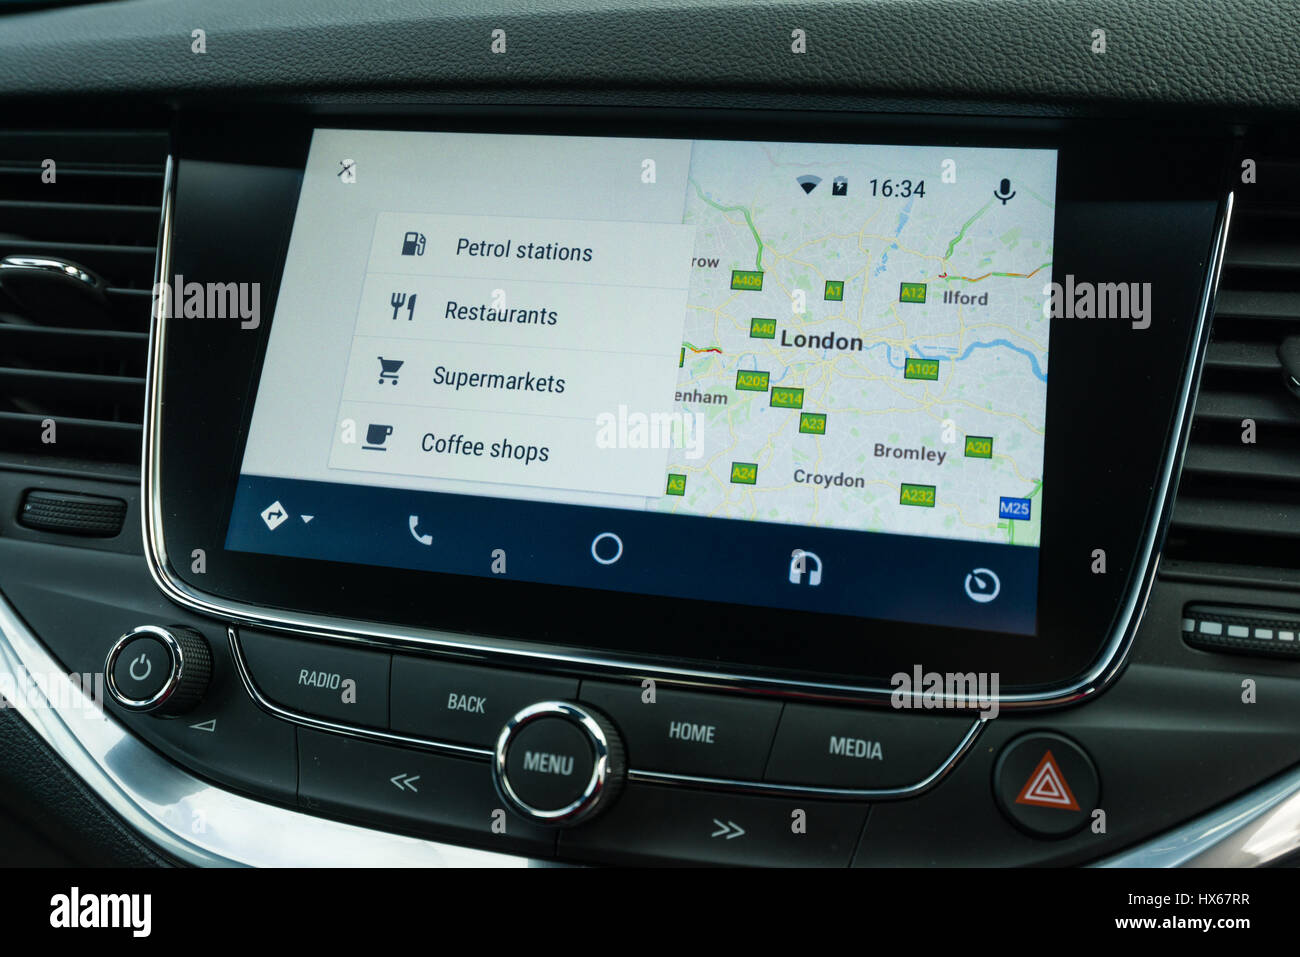 Android Auto Maps Navigation Car Vehicle Interface Showing